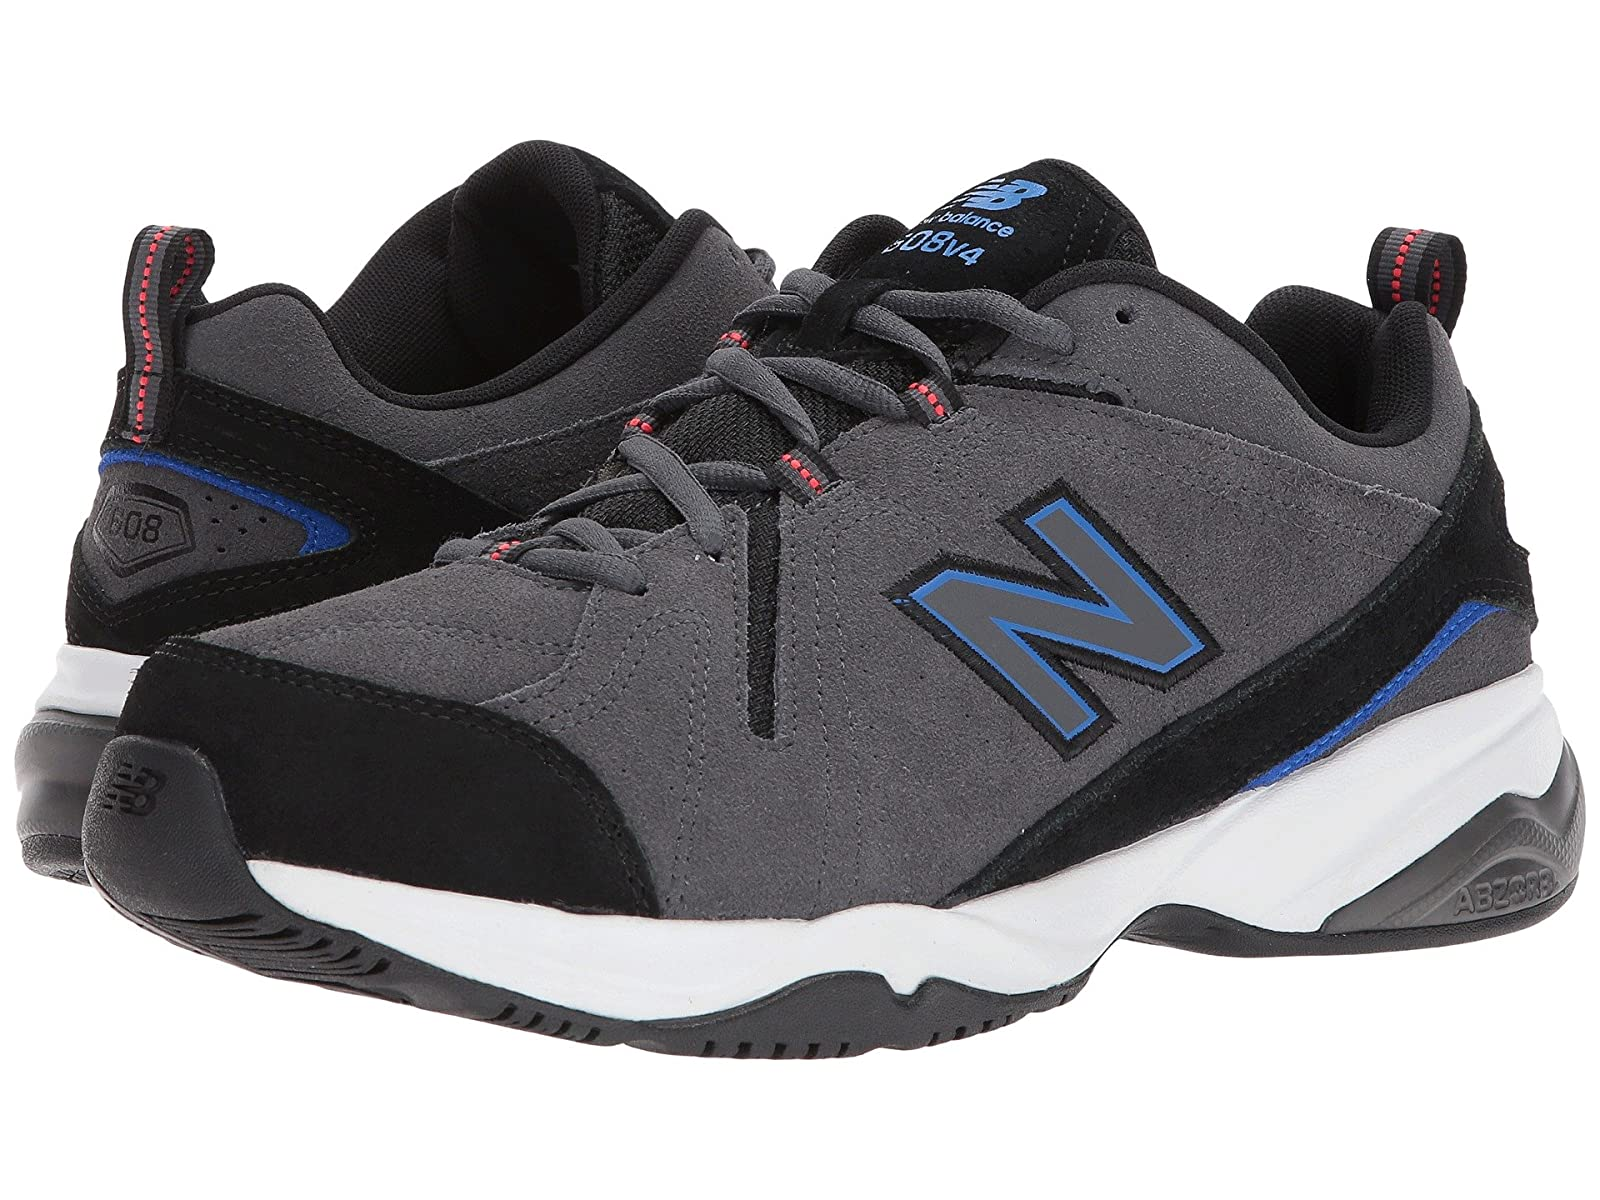 New Balance MX608v4Atmospheric grades have affordable shoes